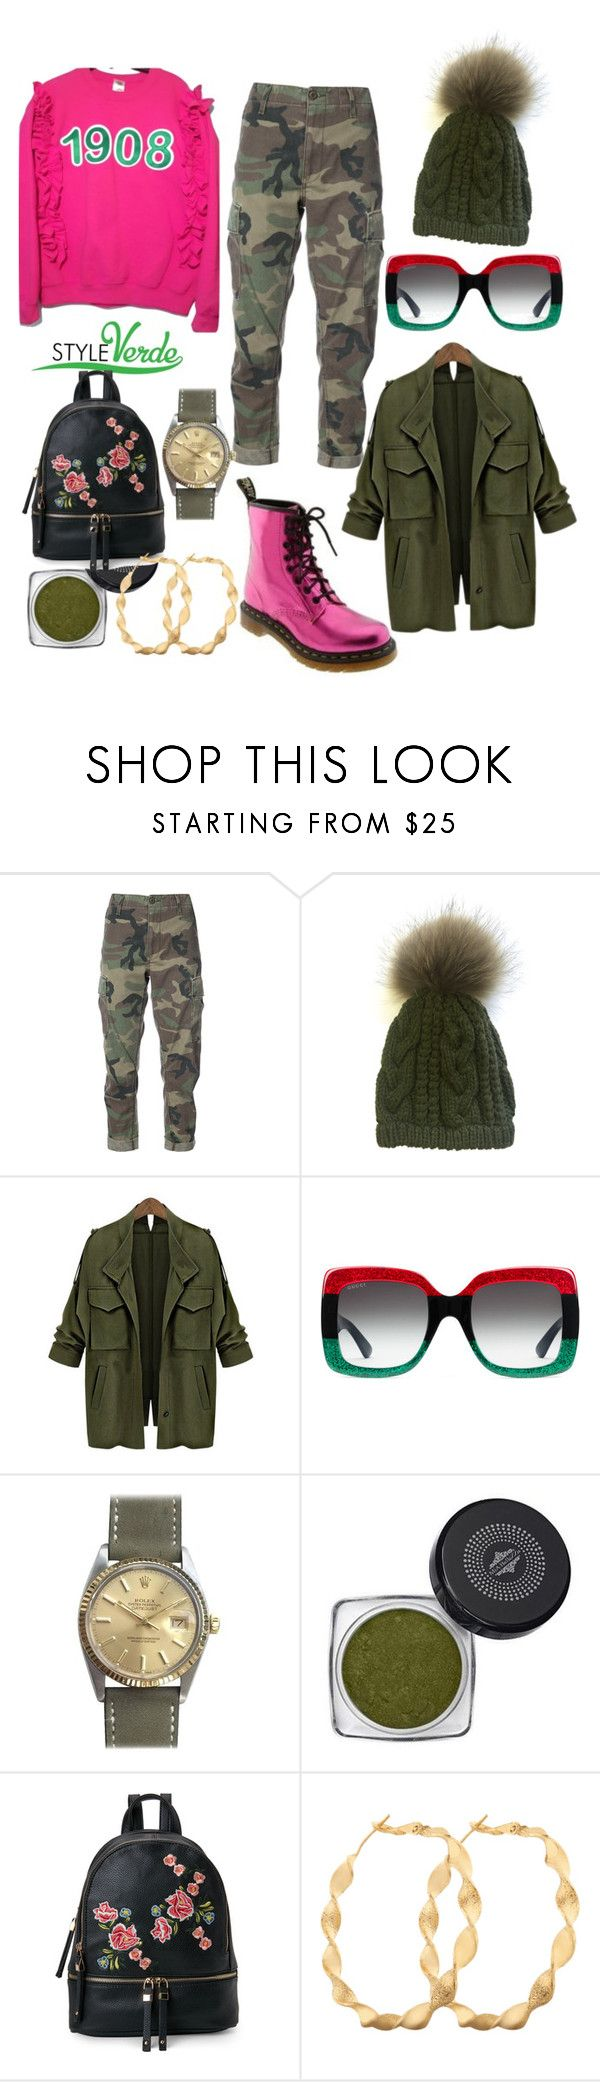 """Camo Flow"" by cagreinvented on Polyvore featuring Dr. Martens, RE/DONE, Linda Richards, Gucci, Rolex, Mia Bellezza and Urban Expressions"